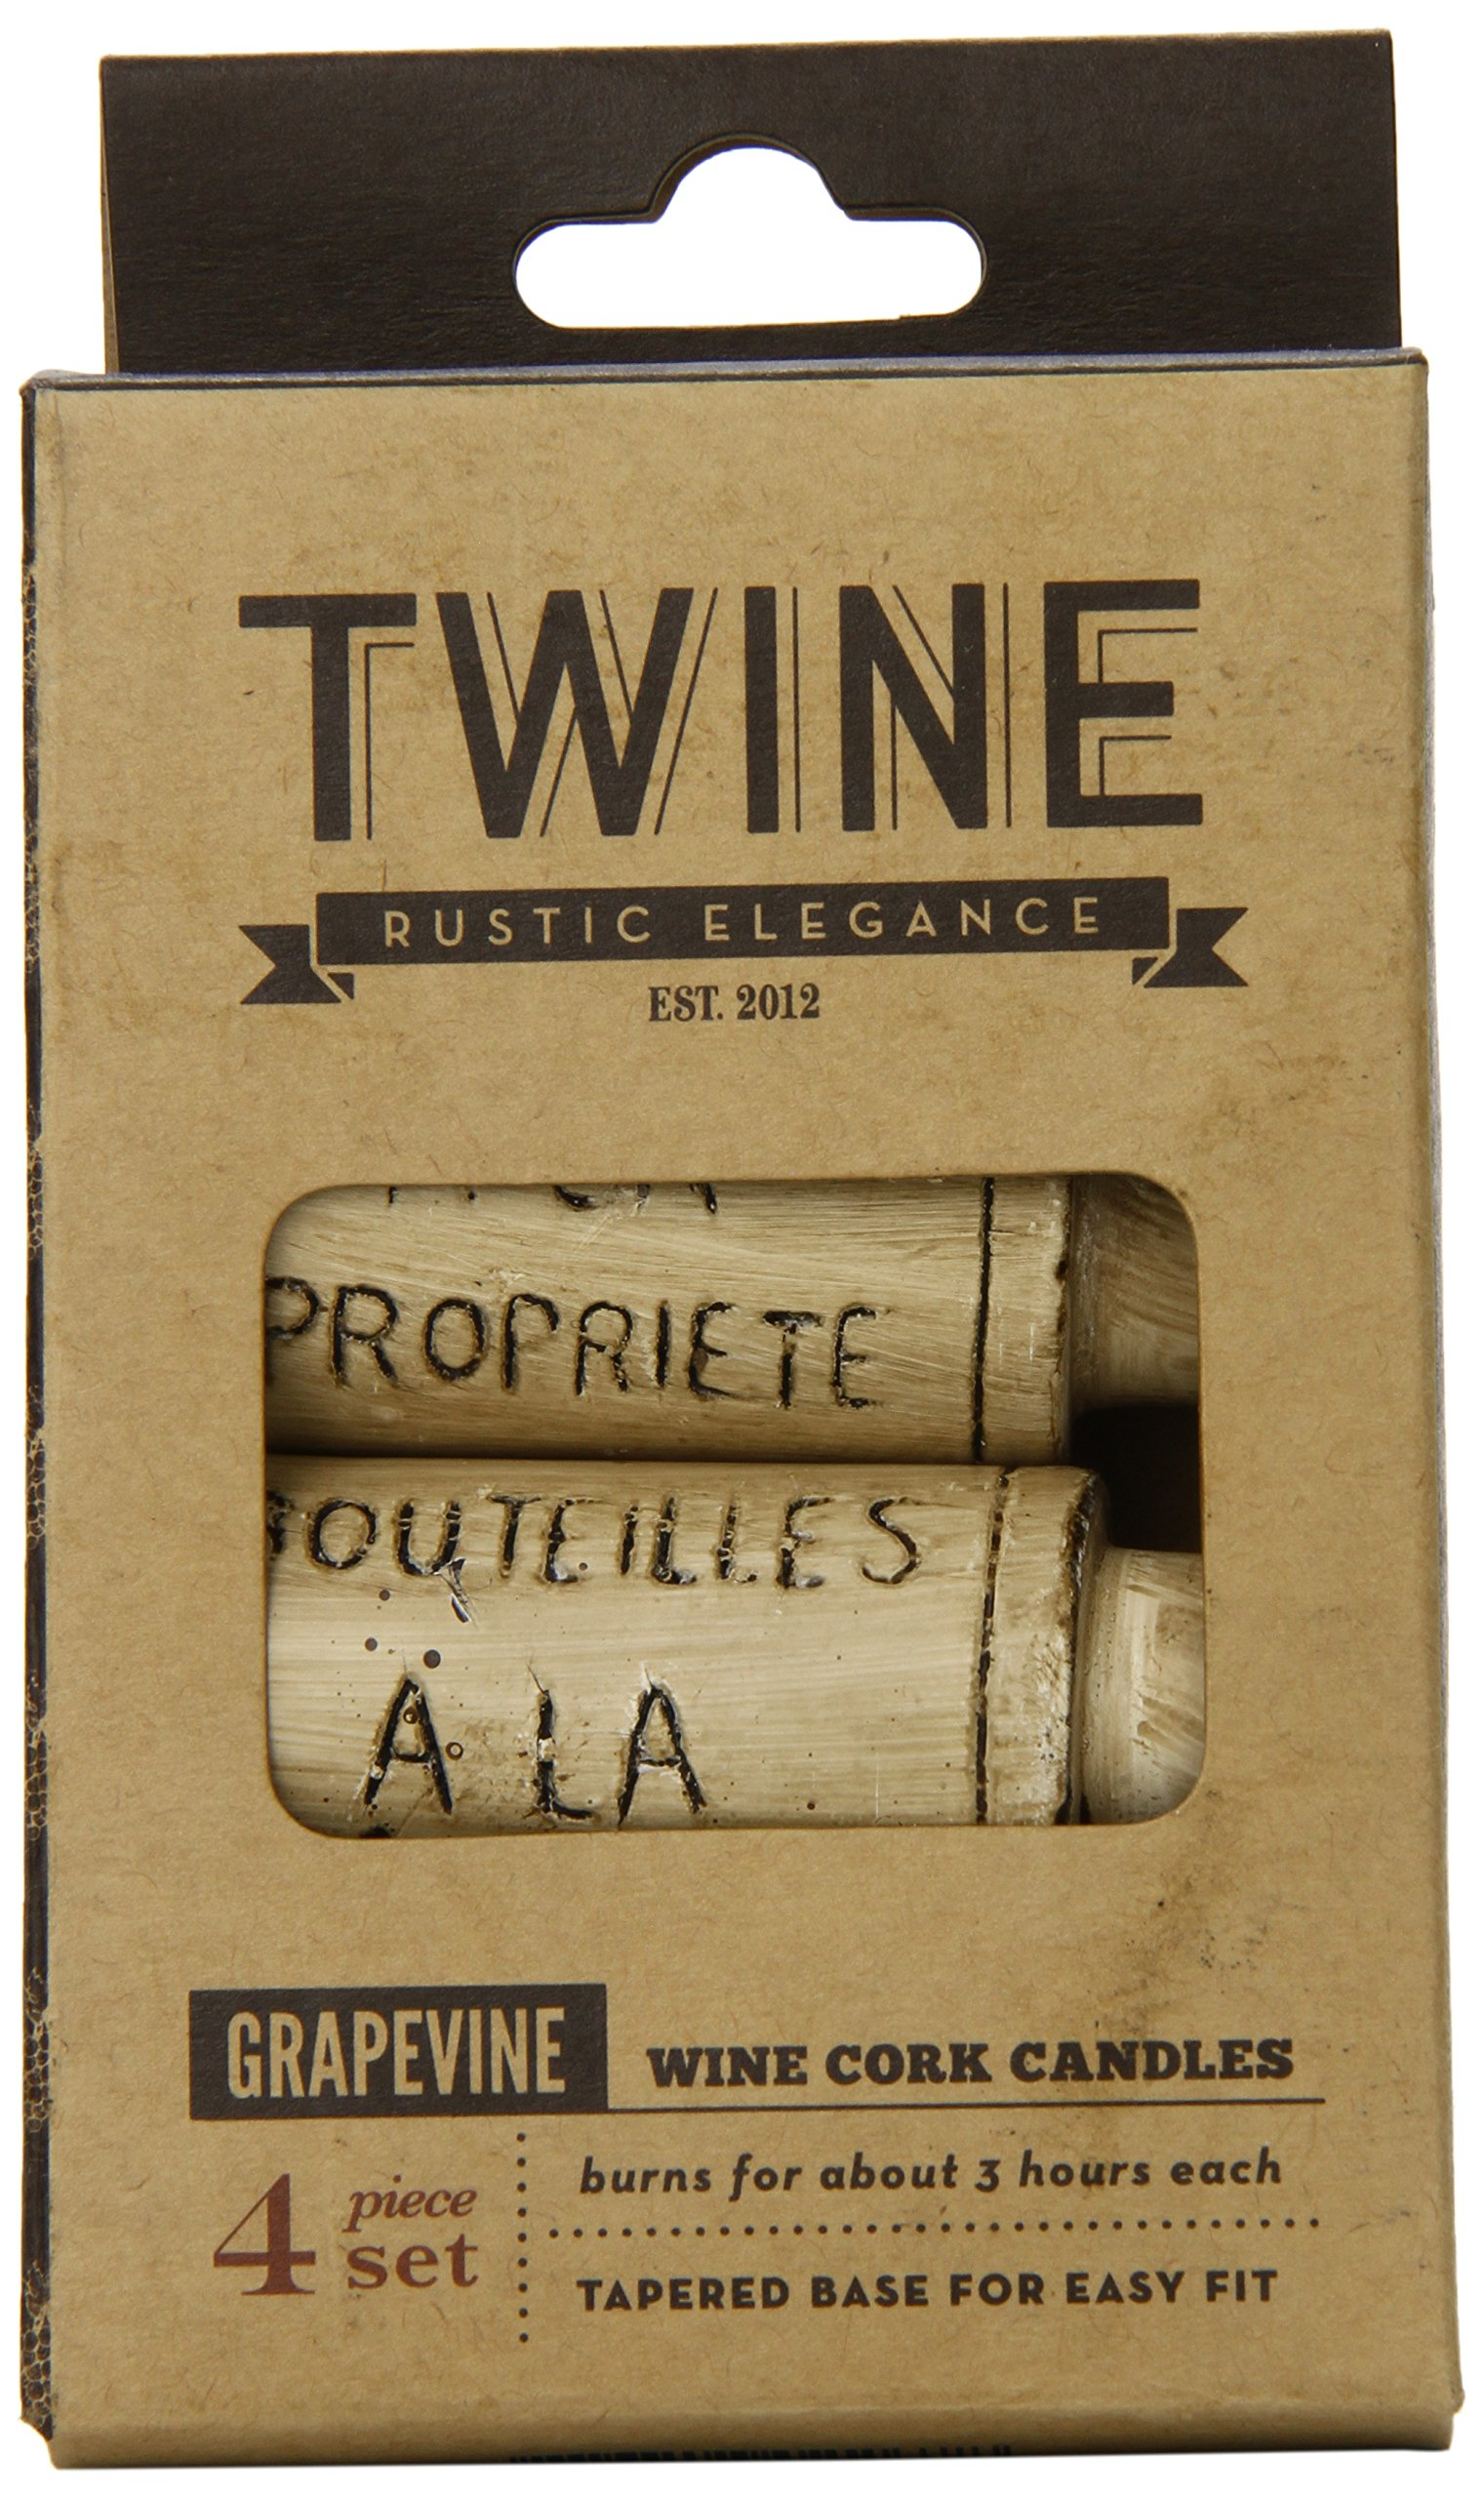 Grapevine Wine Cork Candles by Twine